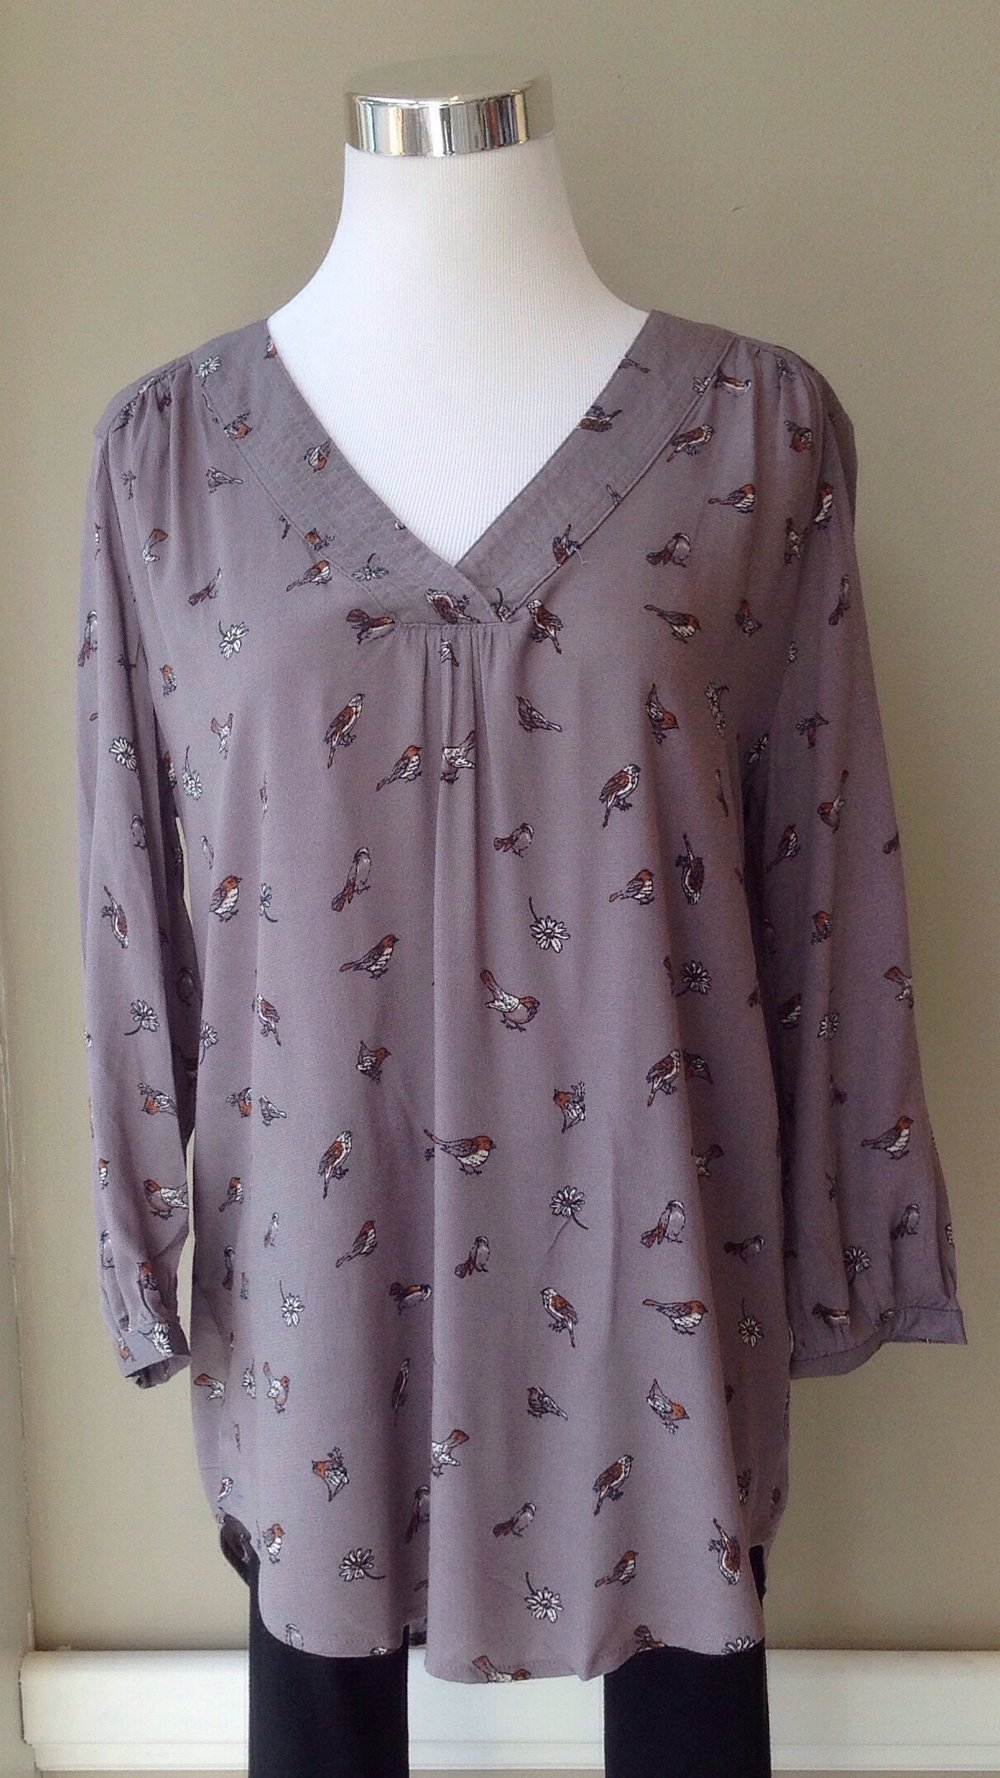 Woven bird print blouse in slate, $35